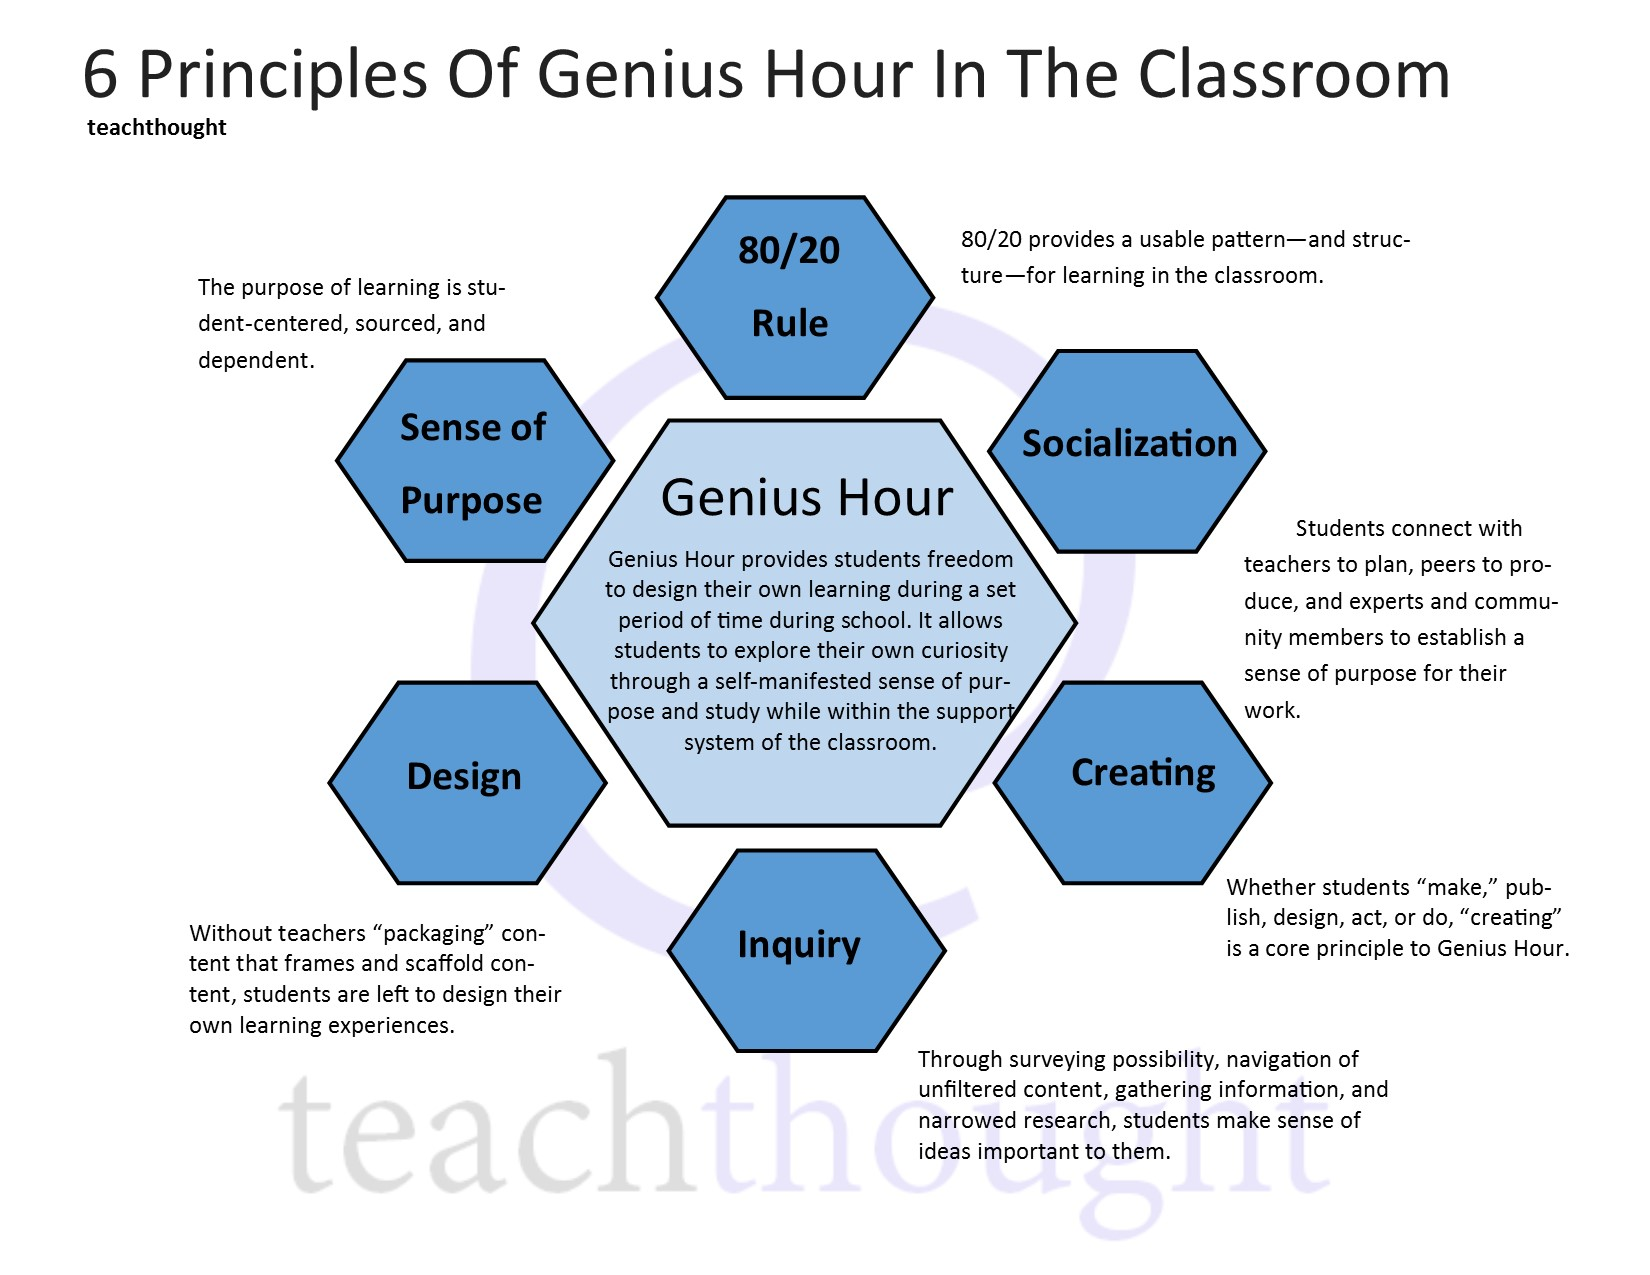 genius-hour-in-classroom